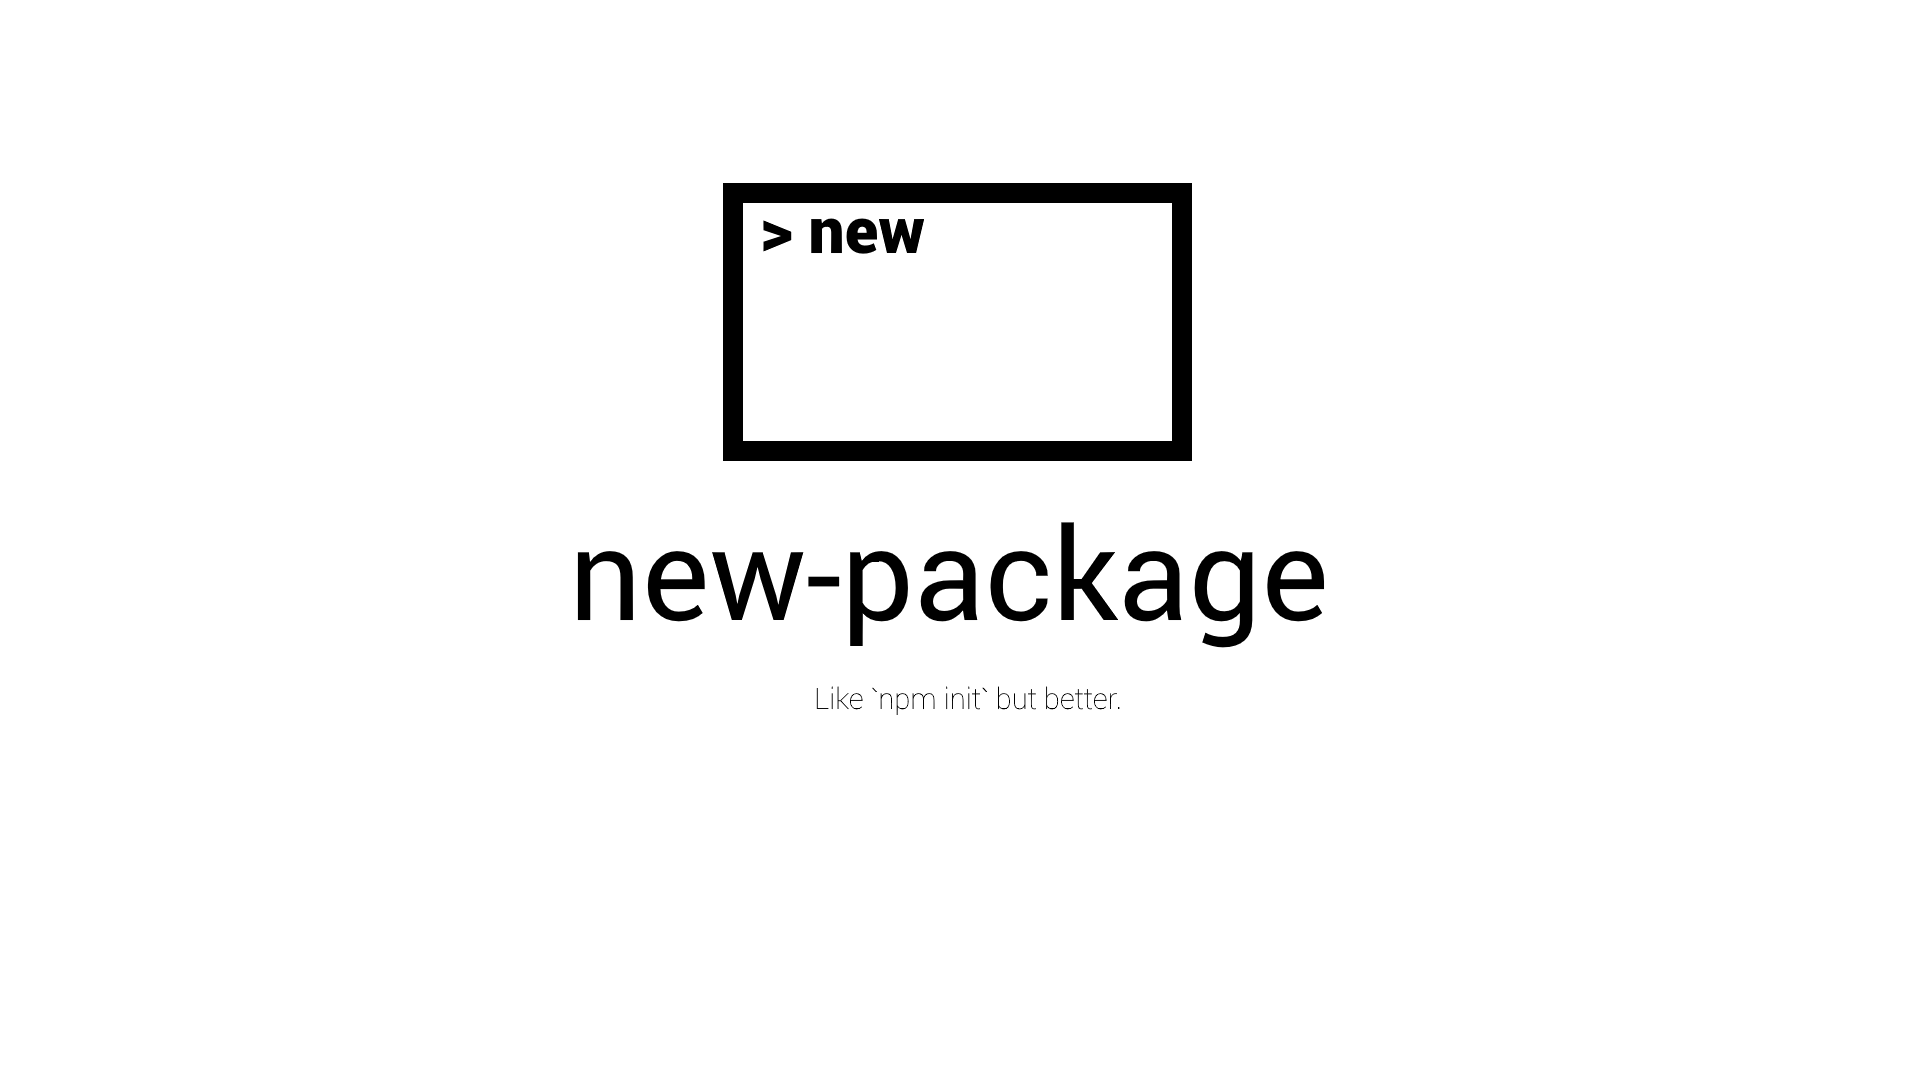 new-package